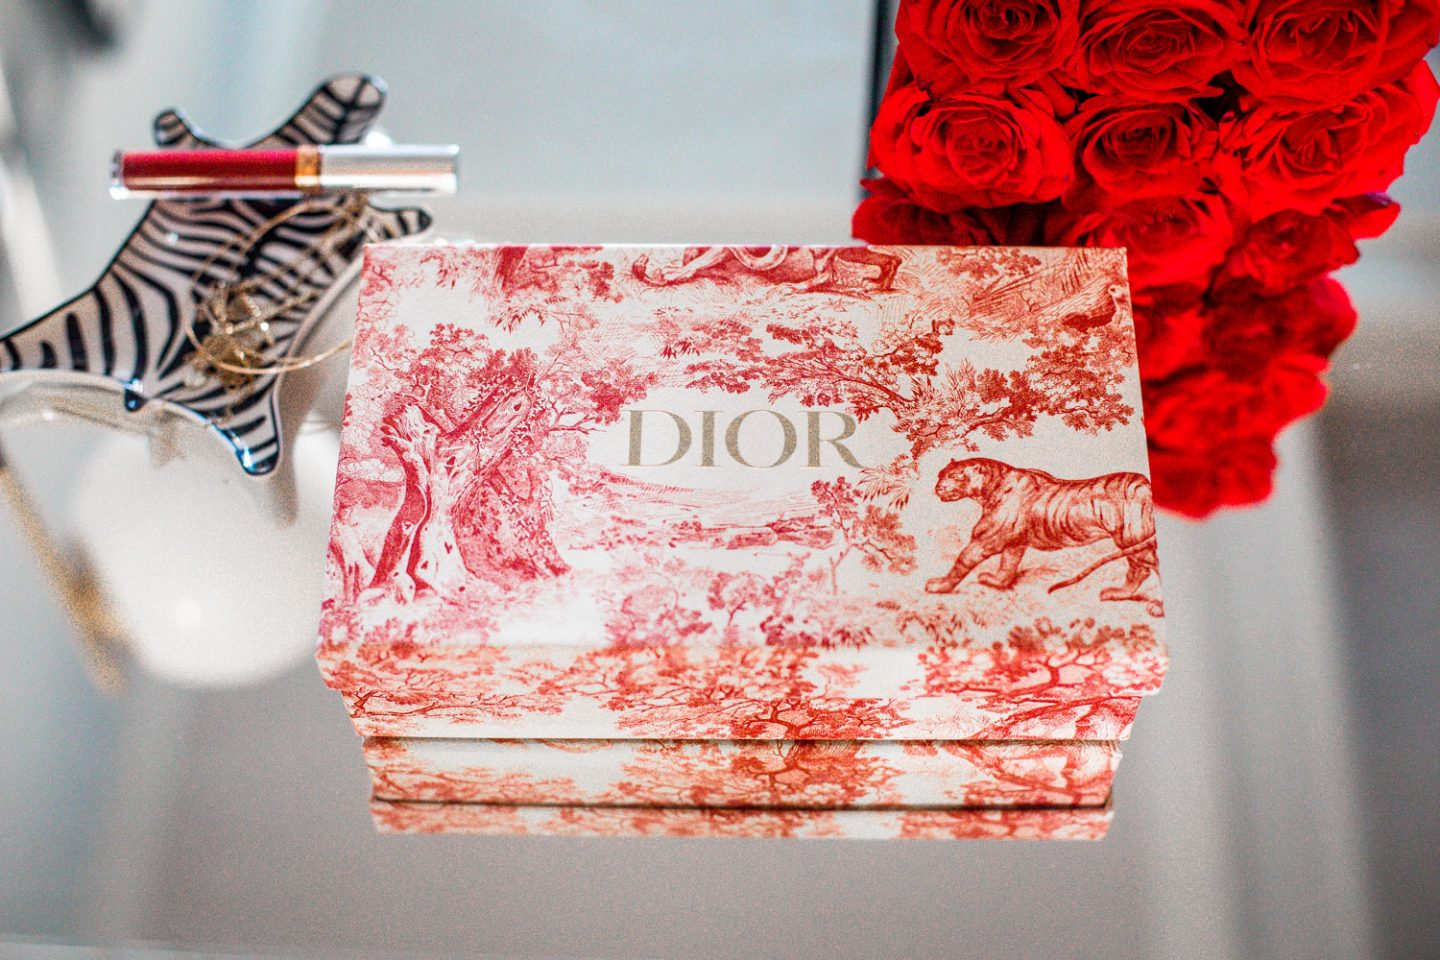 Atlanta fashion blogger Monica Awe-Etuk unboxes new dior belt bag and how I determine which bags to splurge on.